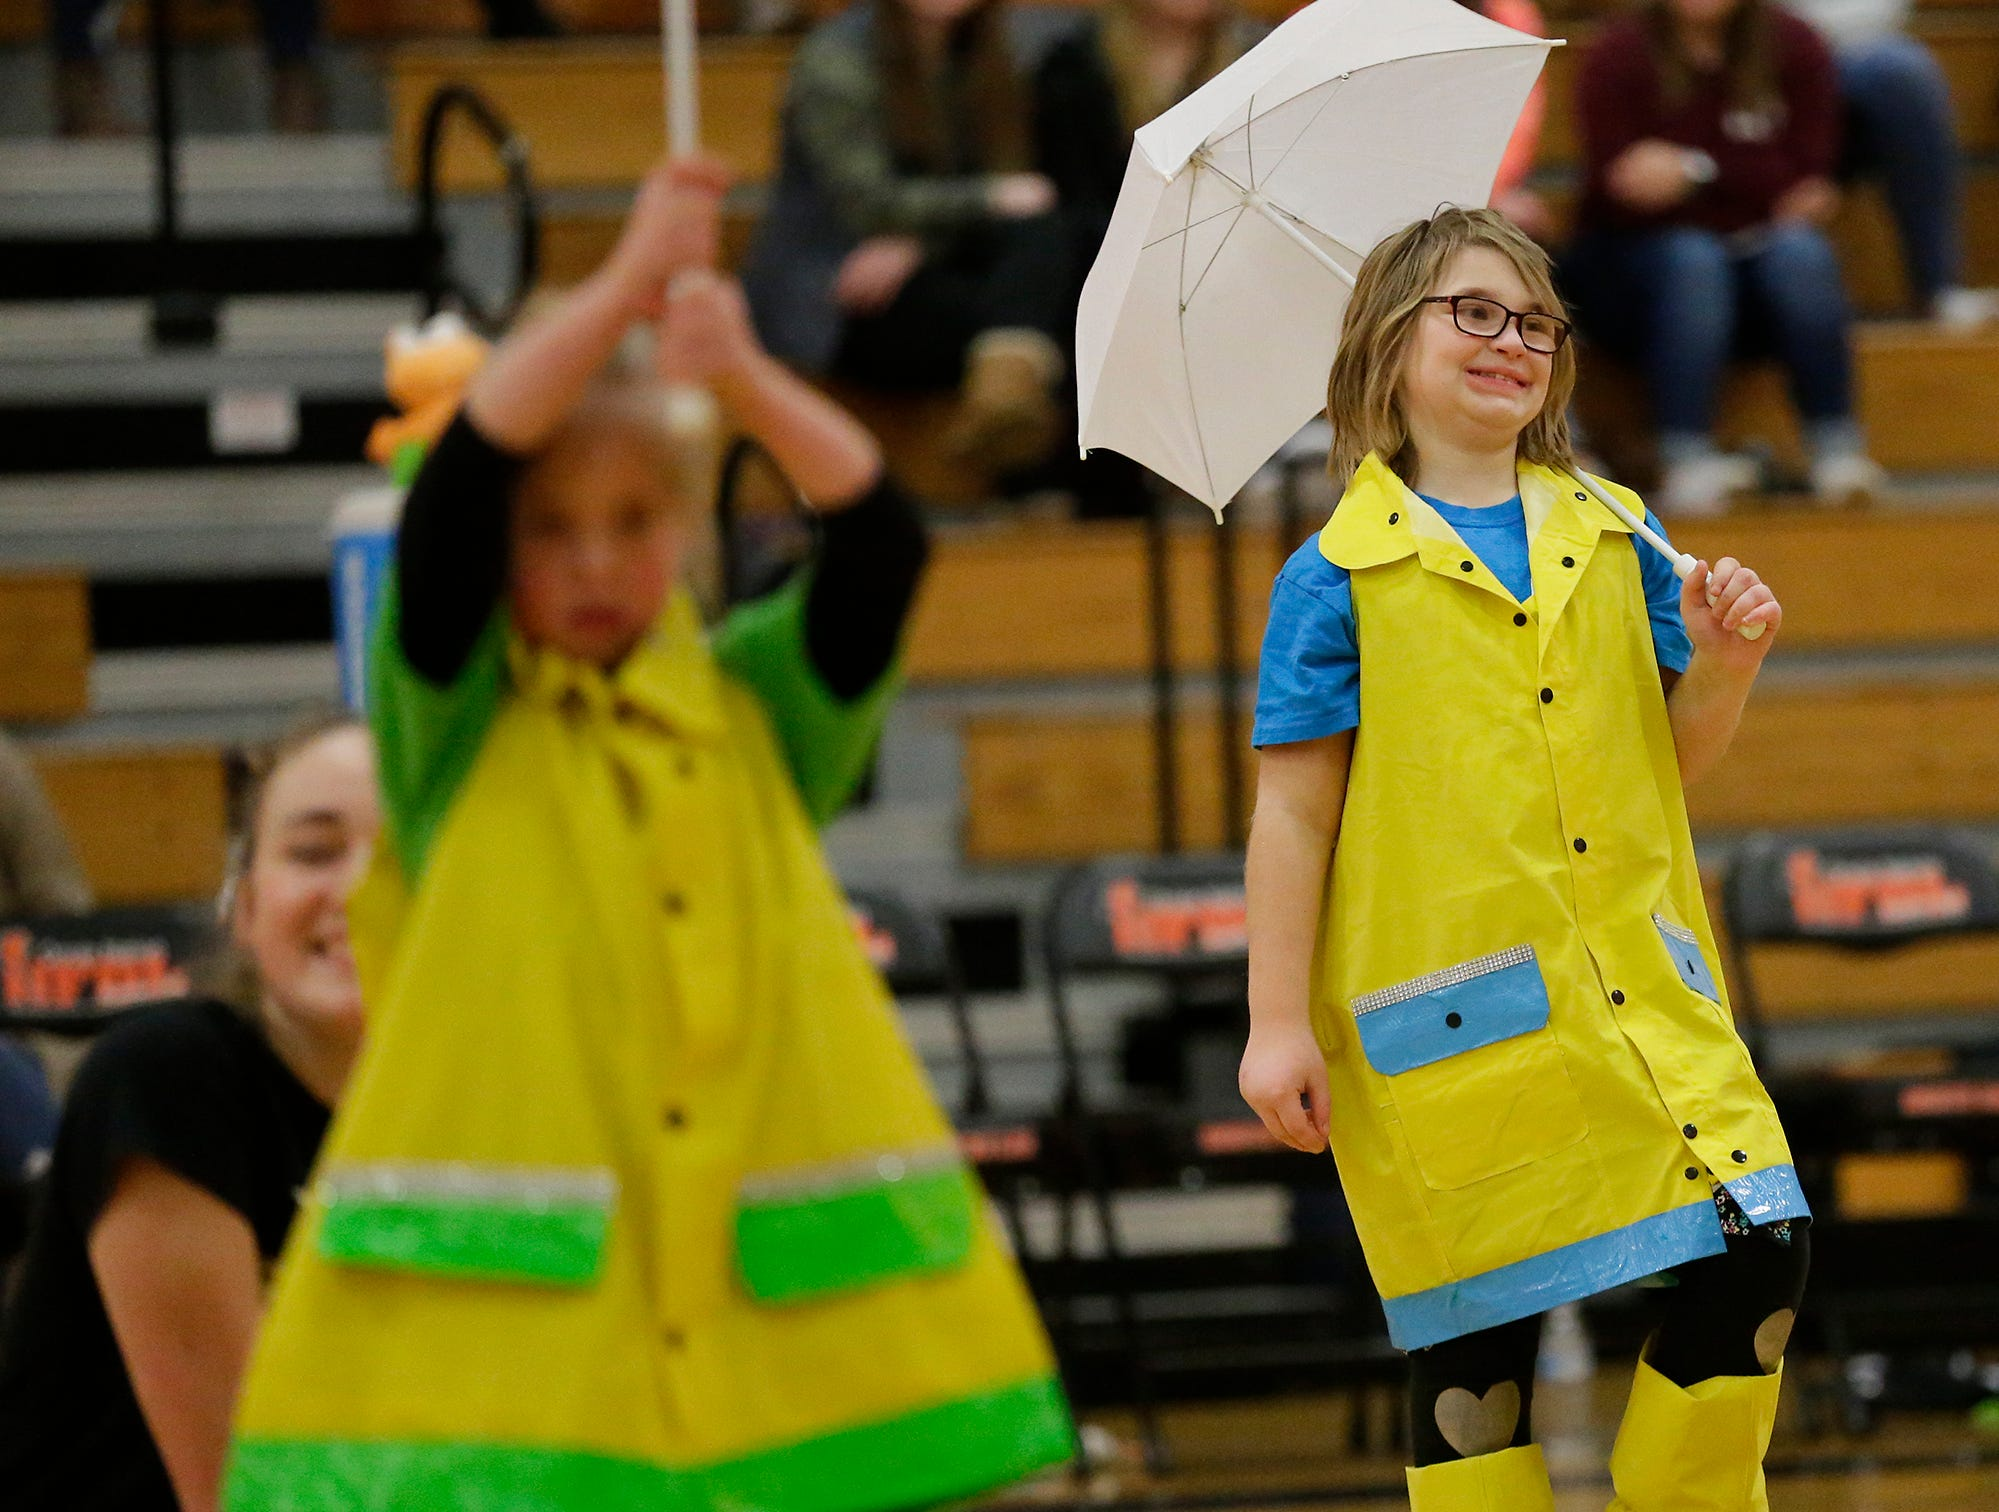 Abby Zirbes of the Shining Stars Dance Team performs during halftime of the North Fond du Lac High School vs. St. Mary's Springs Academy girls basketball game Jan. 4 at North Fond du Lac High School.